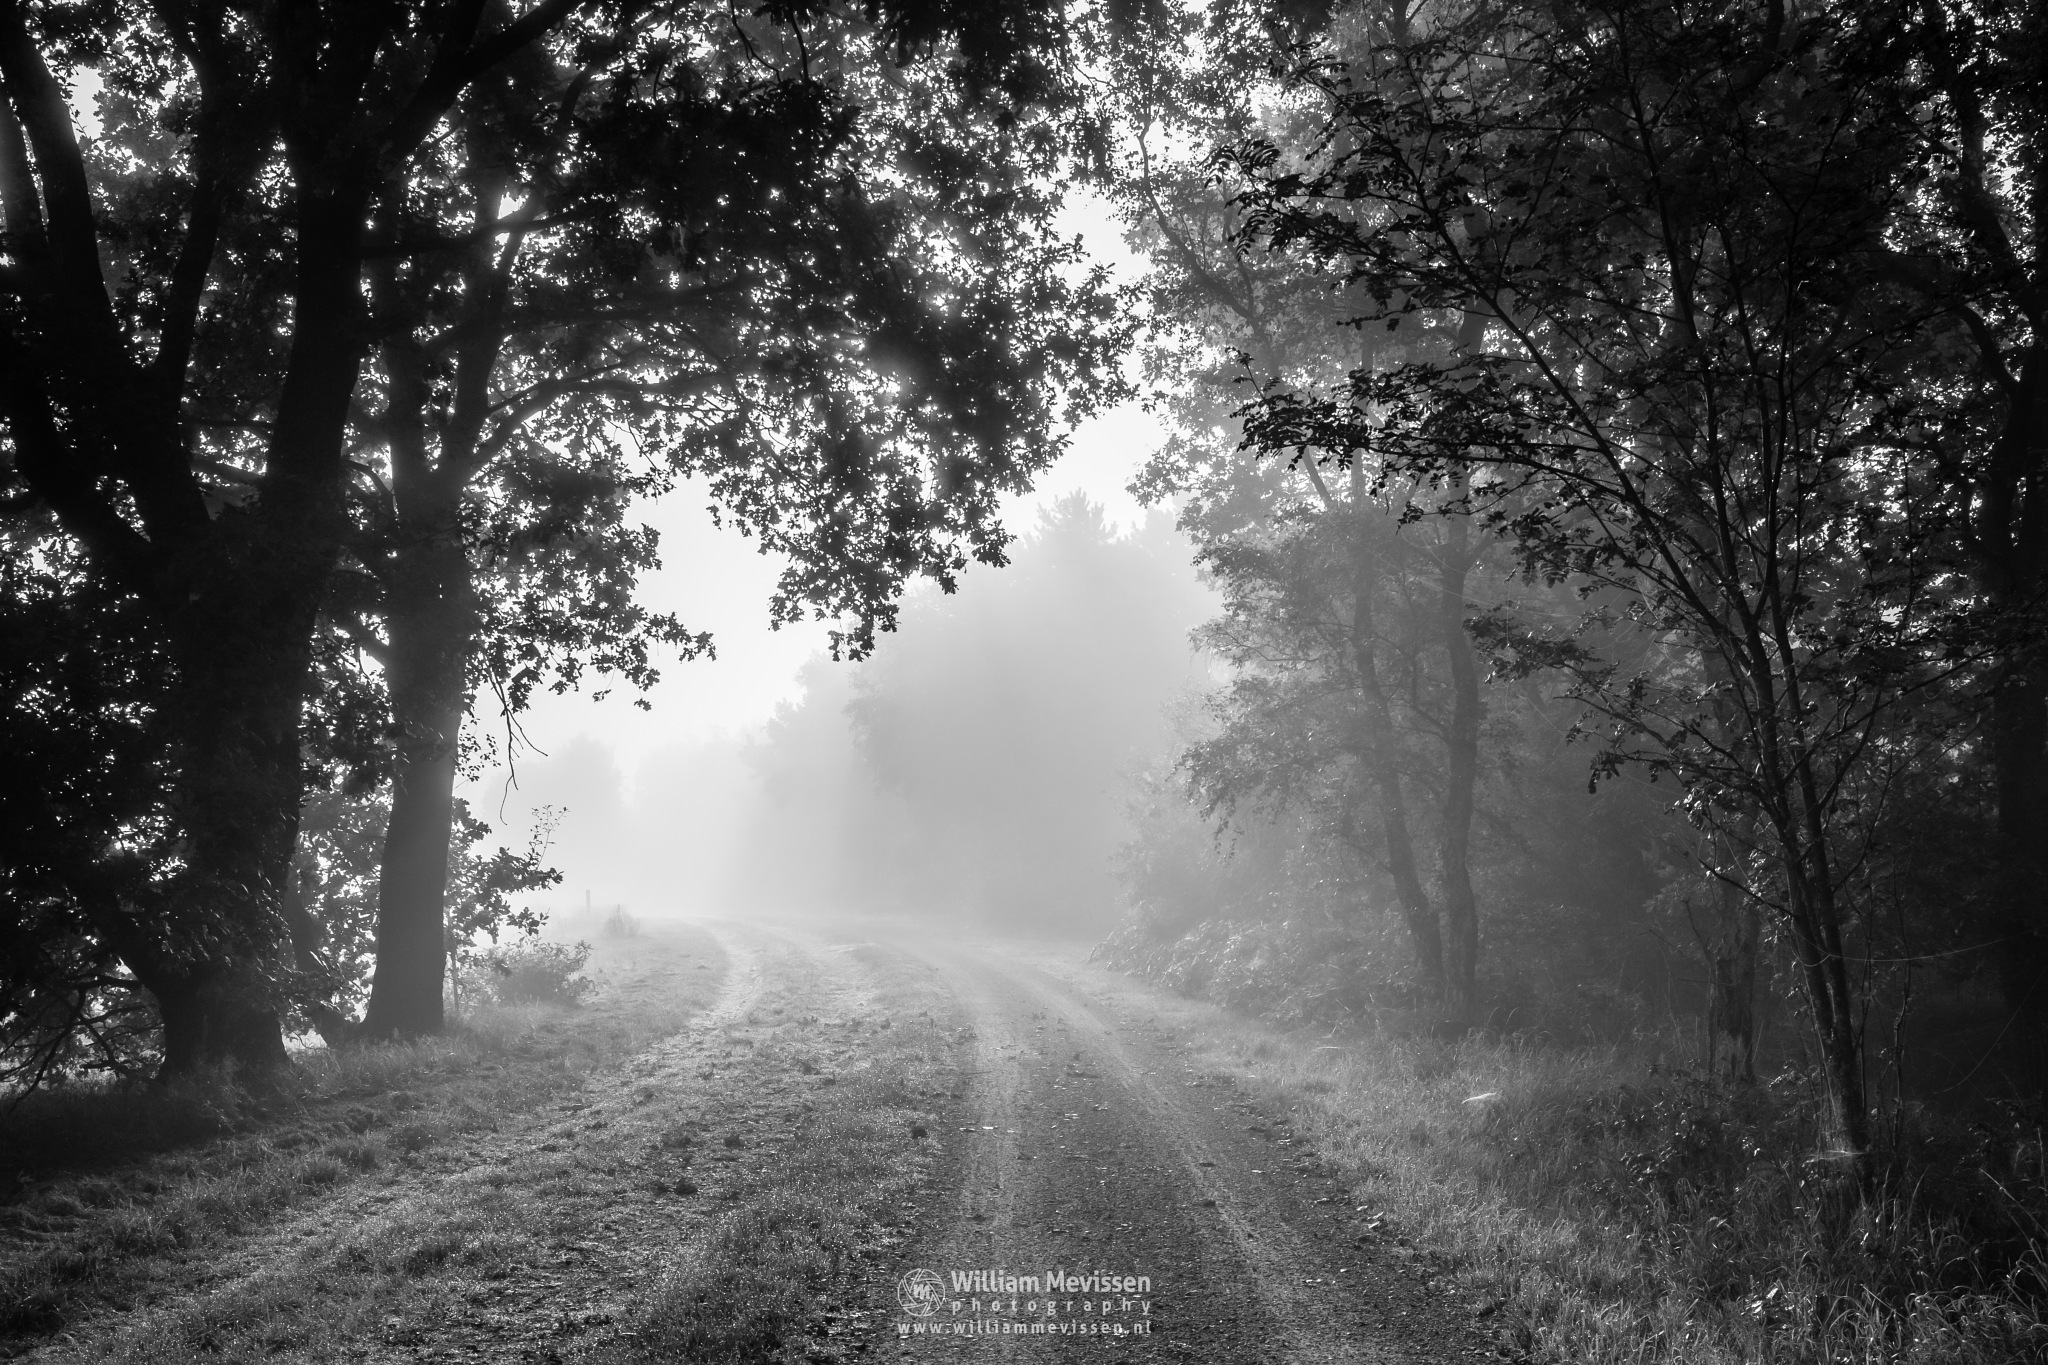 Path Into The Misty Light by William Mevissen